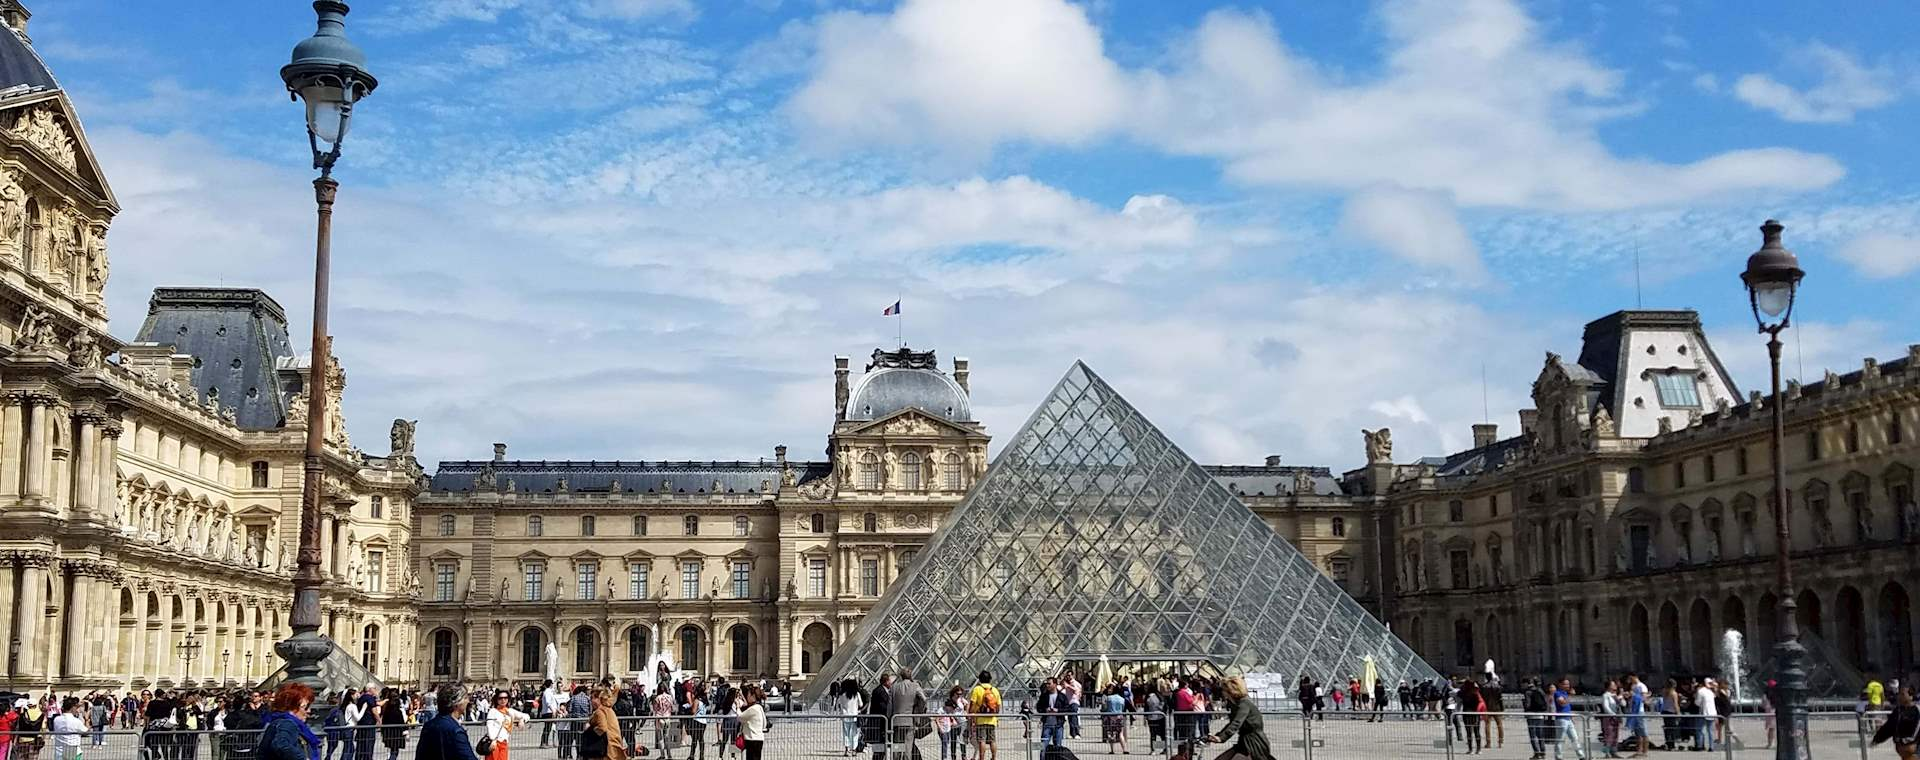 Extended Louvre Masterpieces & Royal Palace Tour